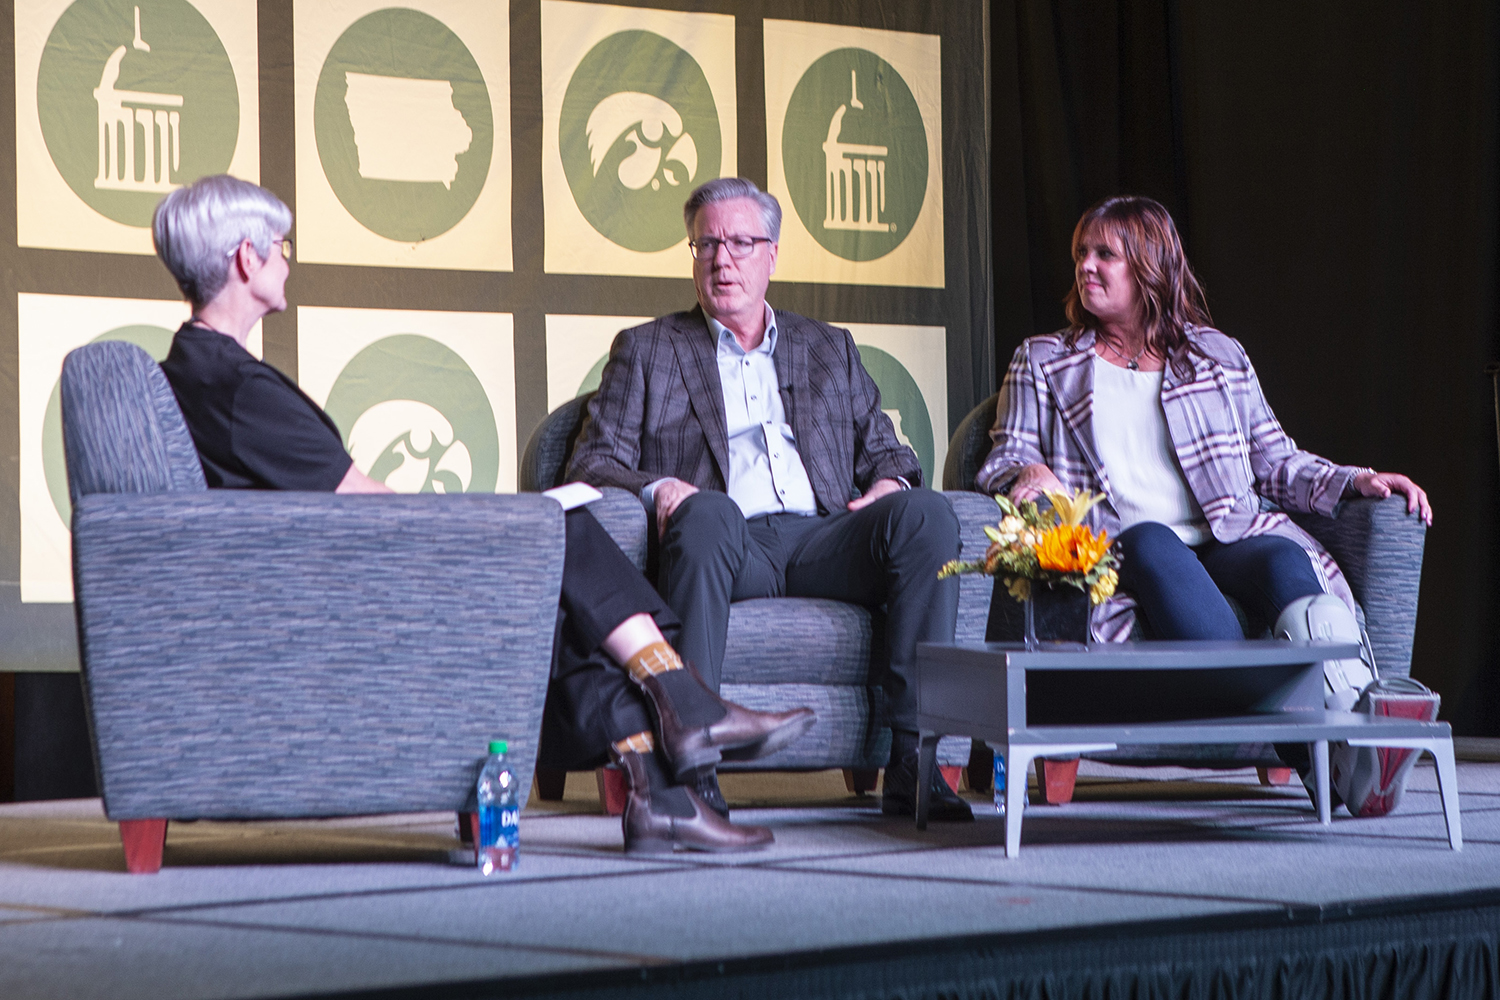 Fran and Margret McCaffery discuss philanthopy at the IMU on Tuesday, October 15th, 2019. After their son Patrick McCaffery was diagnosed with cancer, they began philanthropic work with the American Cancer Society and Coaches vs. Cancer.